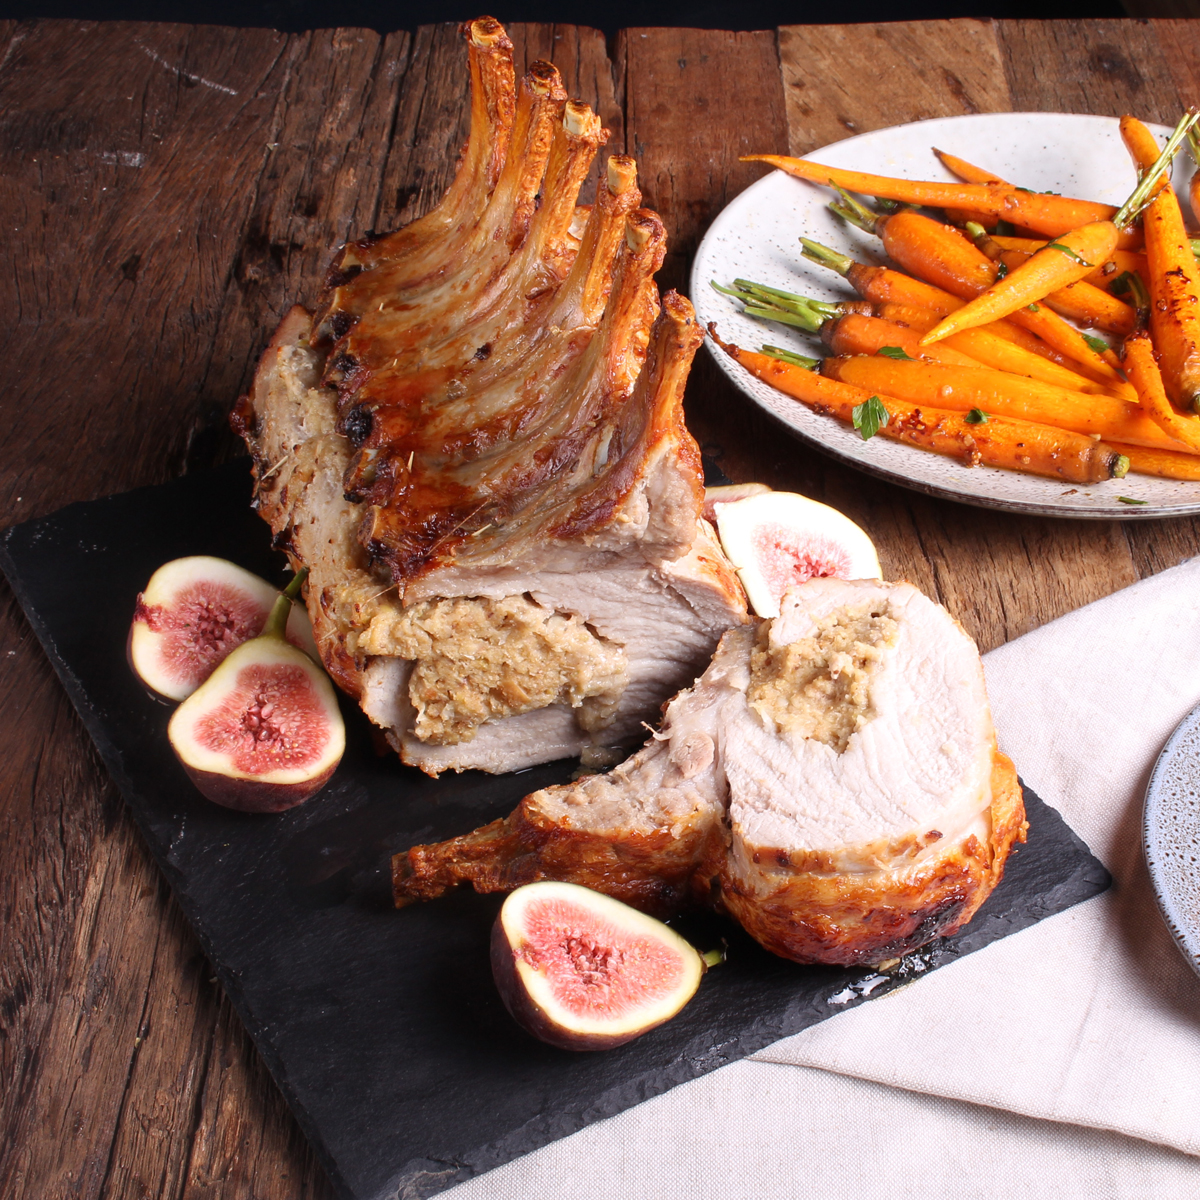 Fig and Apple Stuffed Pork Rib Rack wih Garlic Butter Dutch Carrots - Pork Rib Rack